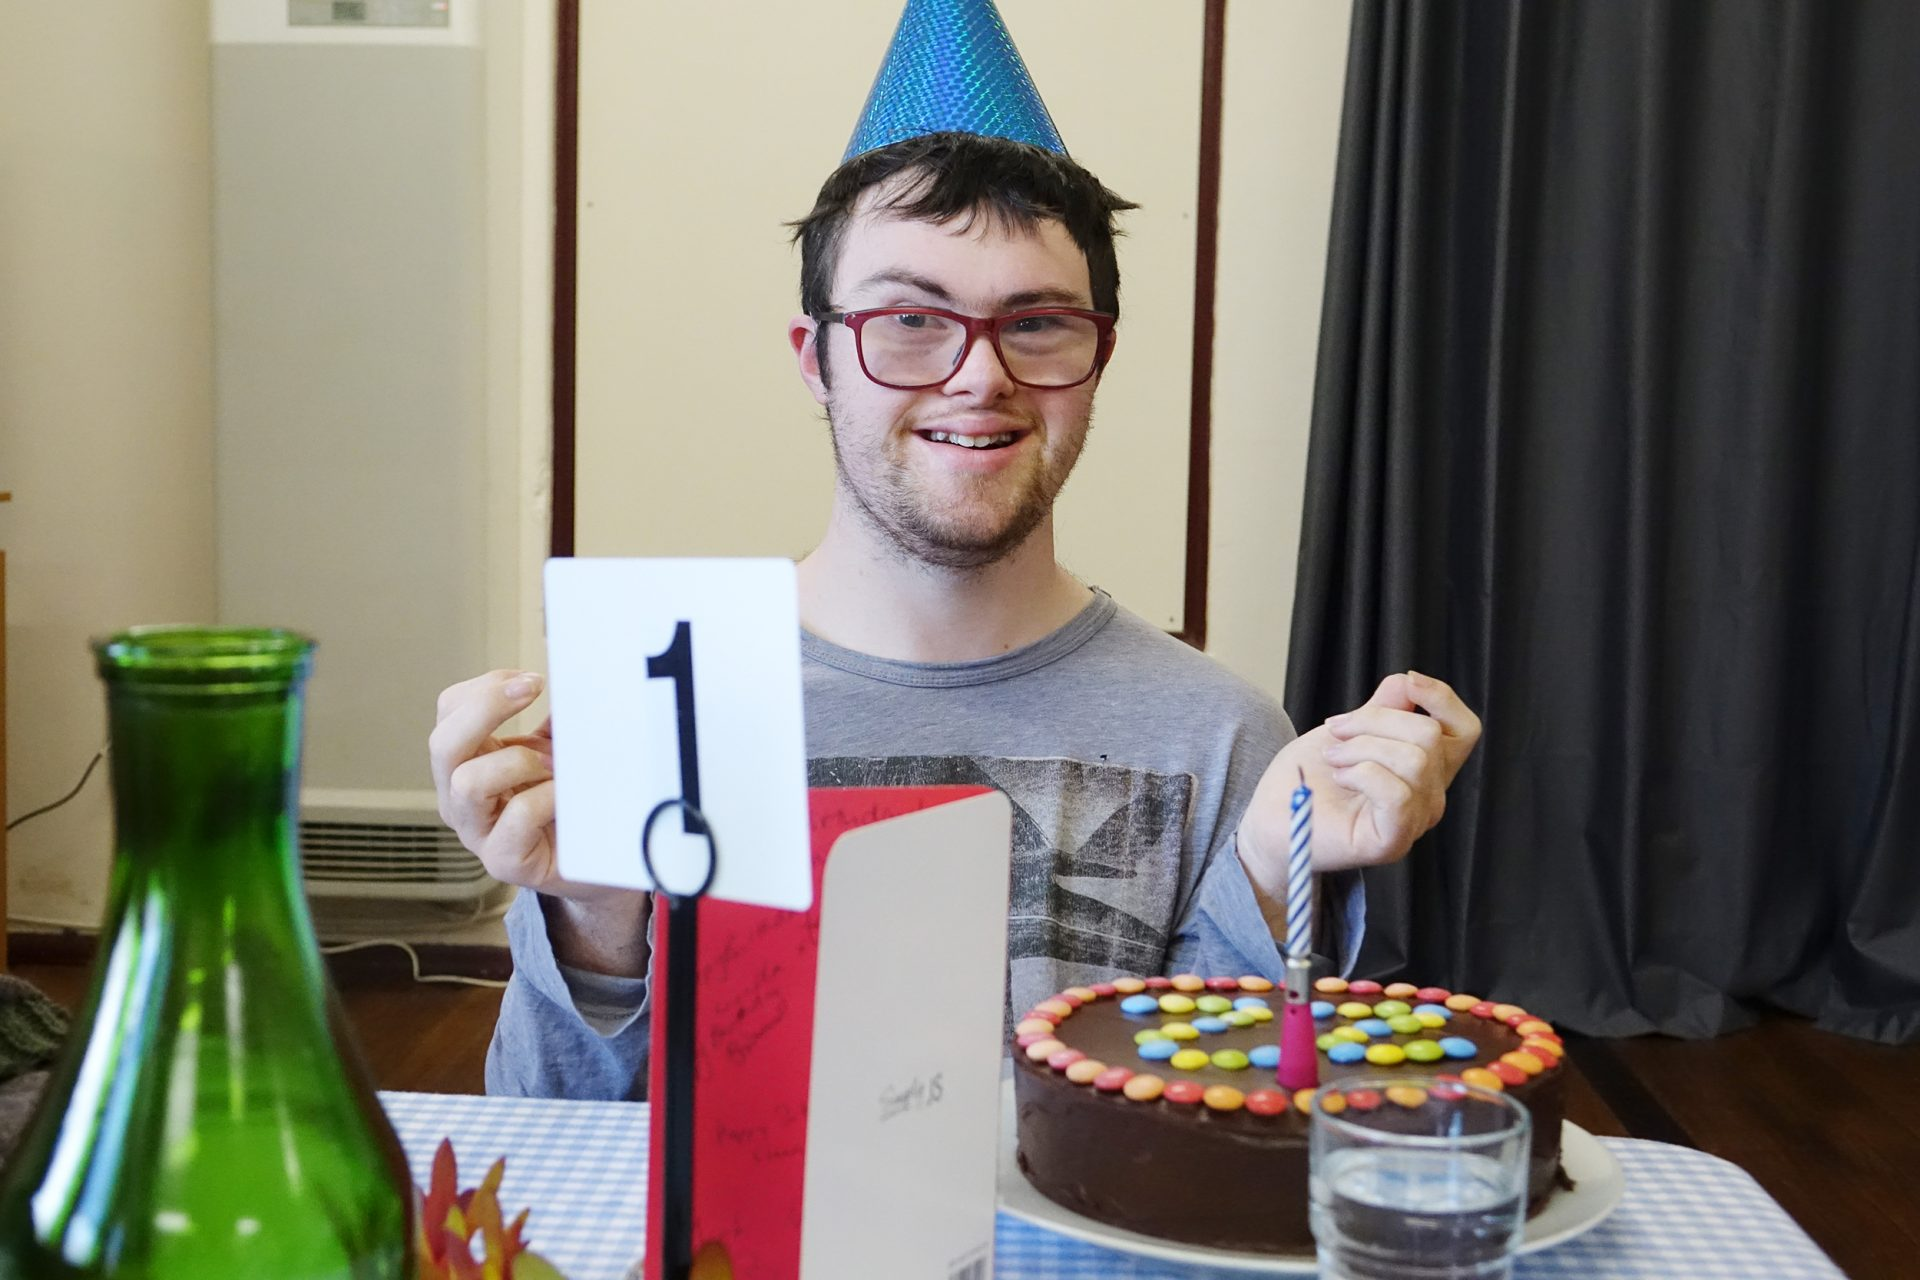 A young man wearing glasses and a blue birthday hat smiles at the camera. There is a chocolate cake in front of him with one candle on top.